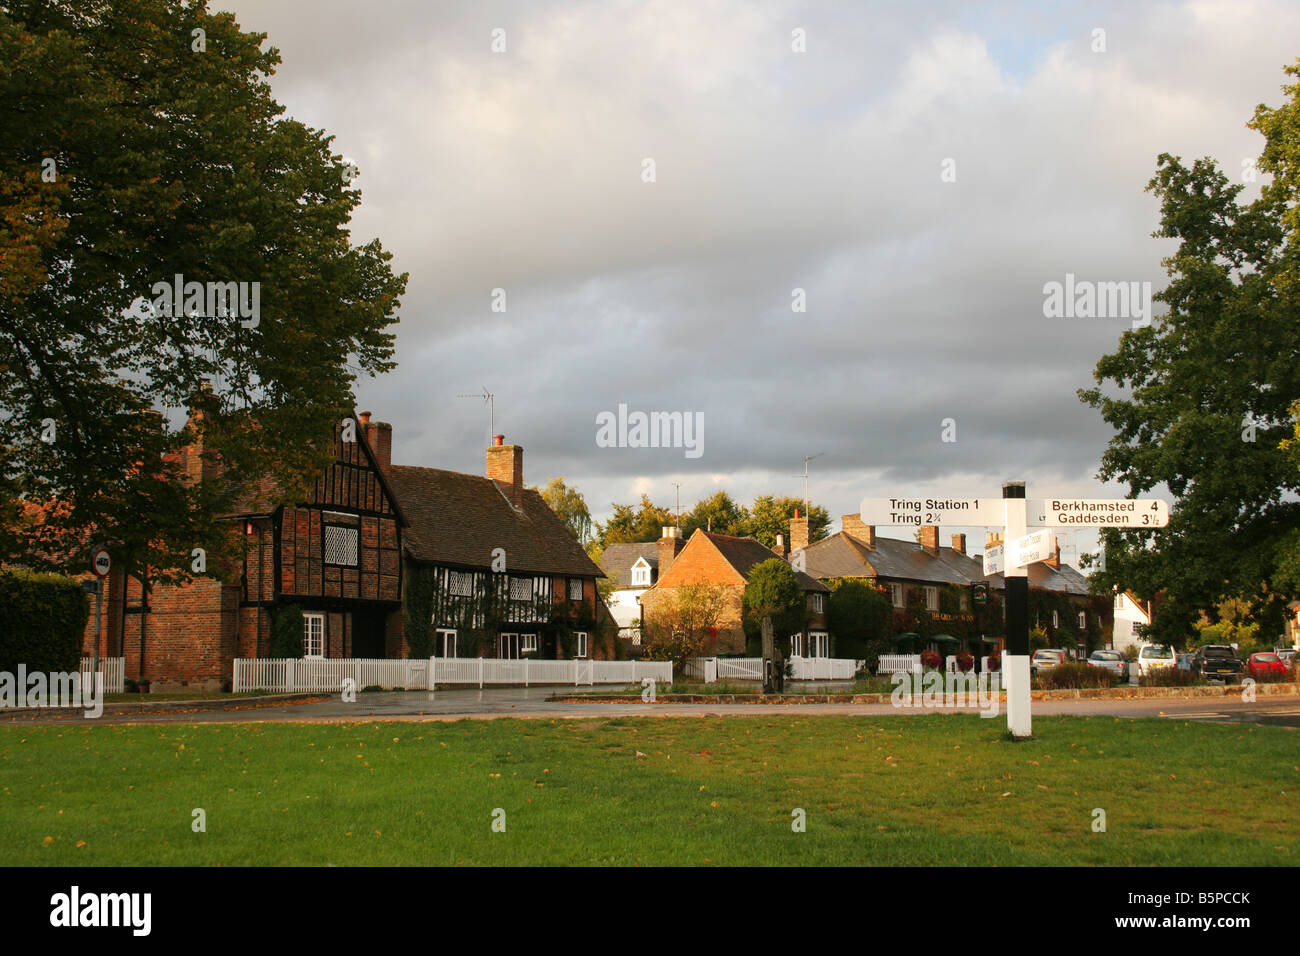 Aldbury National Trust village in Hertfordshire, below the Ashridge Park Estate in the Chilterns - Stock Image